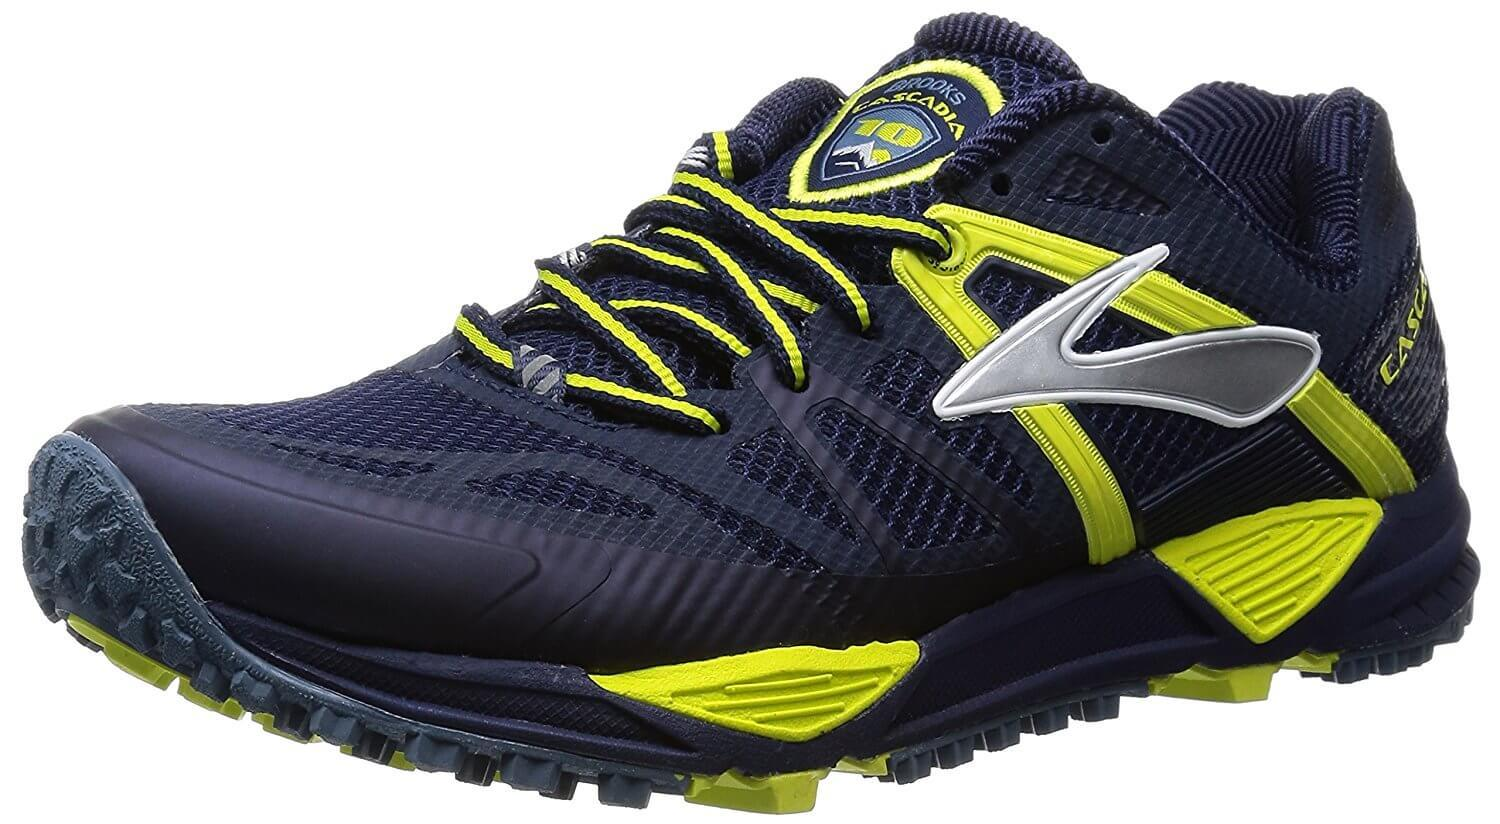 the Brooks Cascadia 10 is a dynamic trail running shoe that is stylish and comfortable